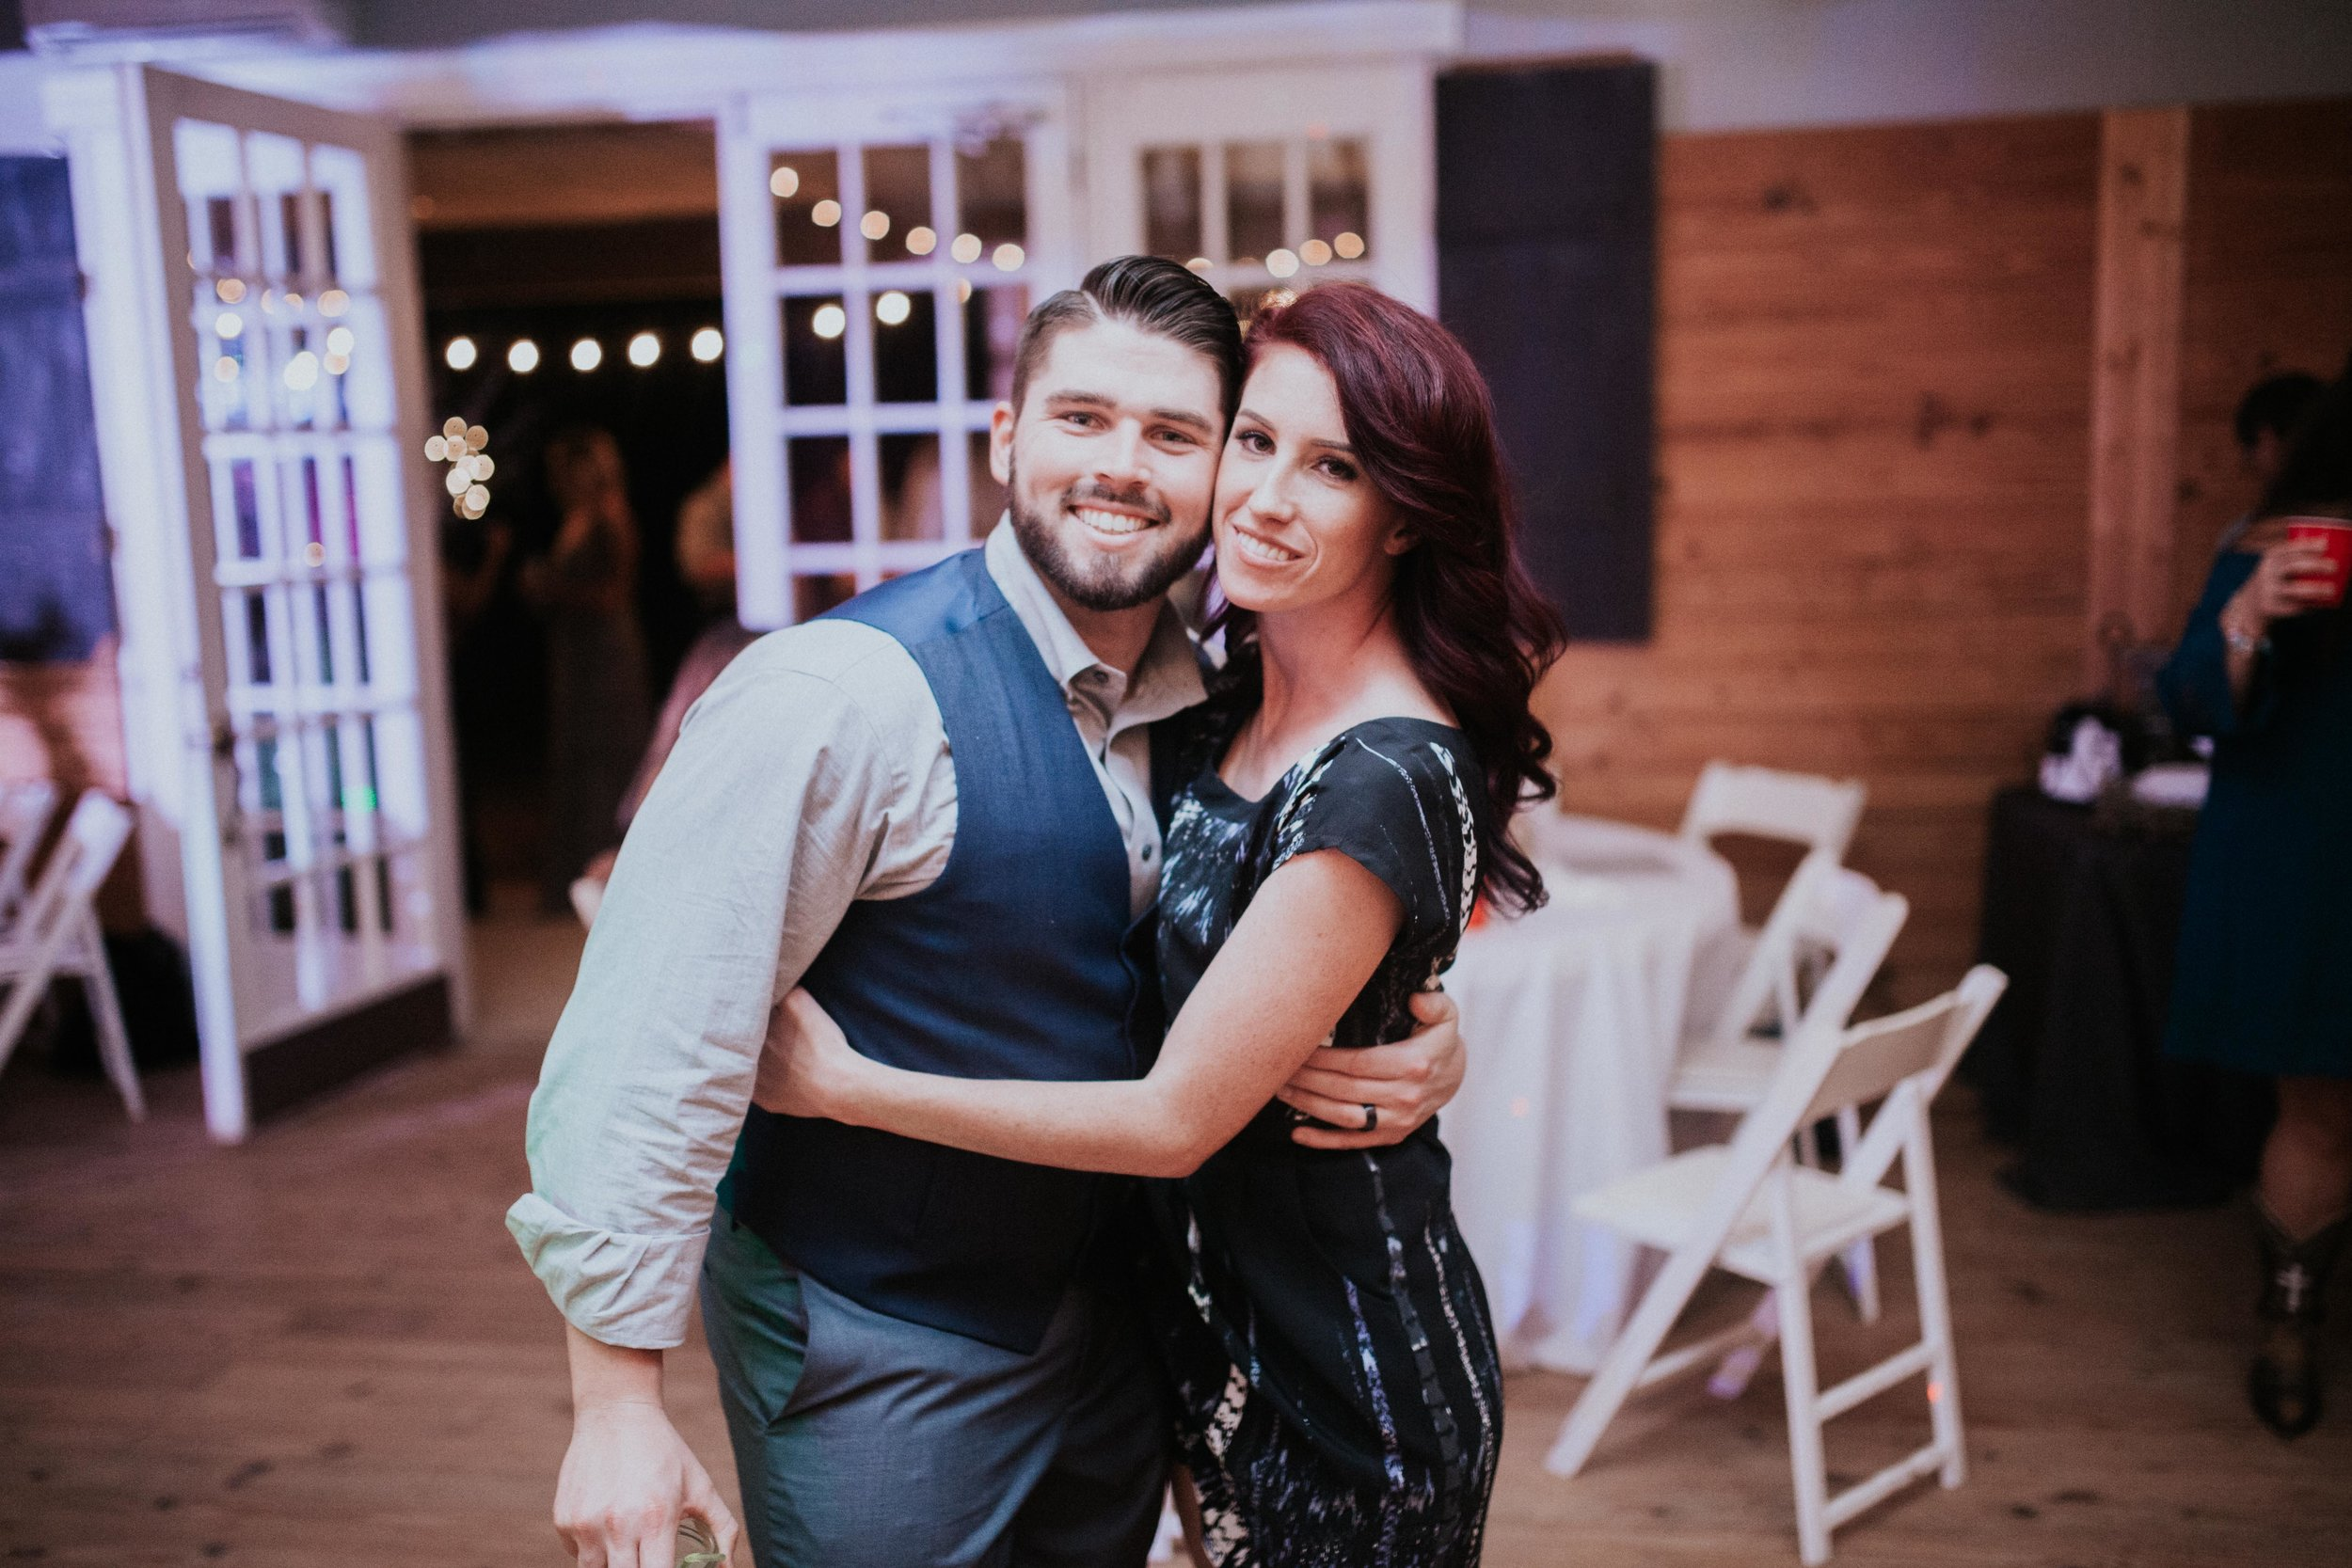 Vow Renewal in Magnolia Texas - Madeleine Frost Wedding Photographer - Sized for Blog-69.jpg